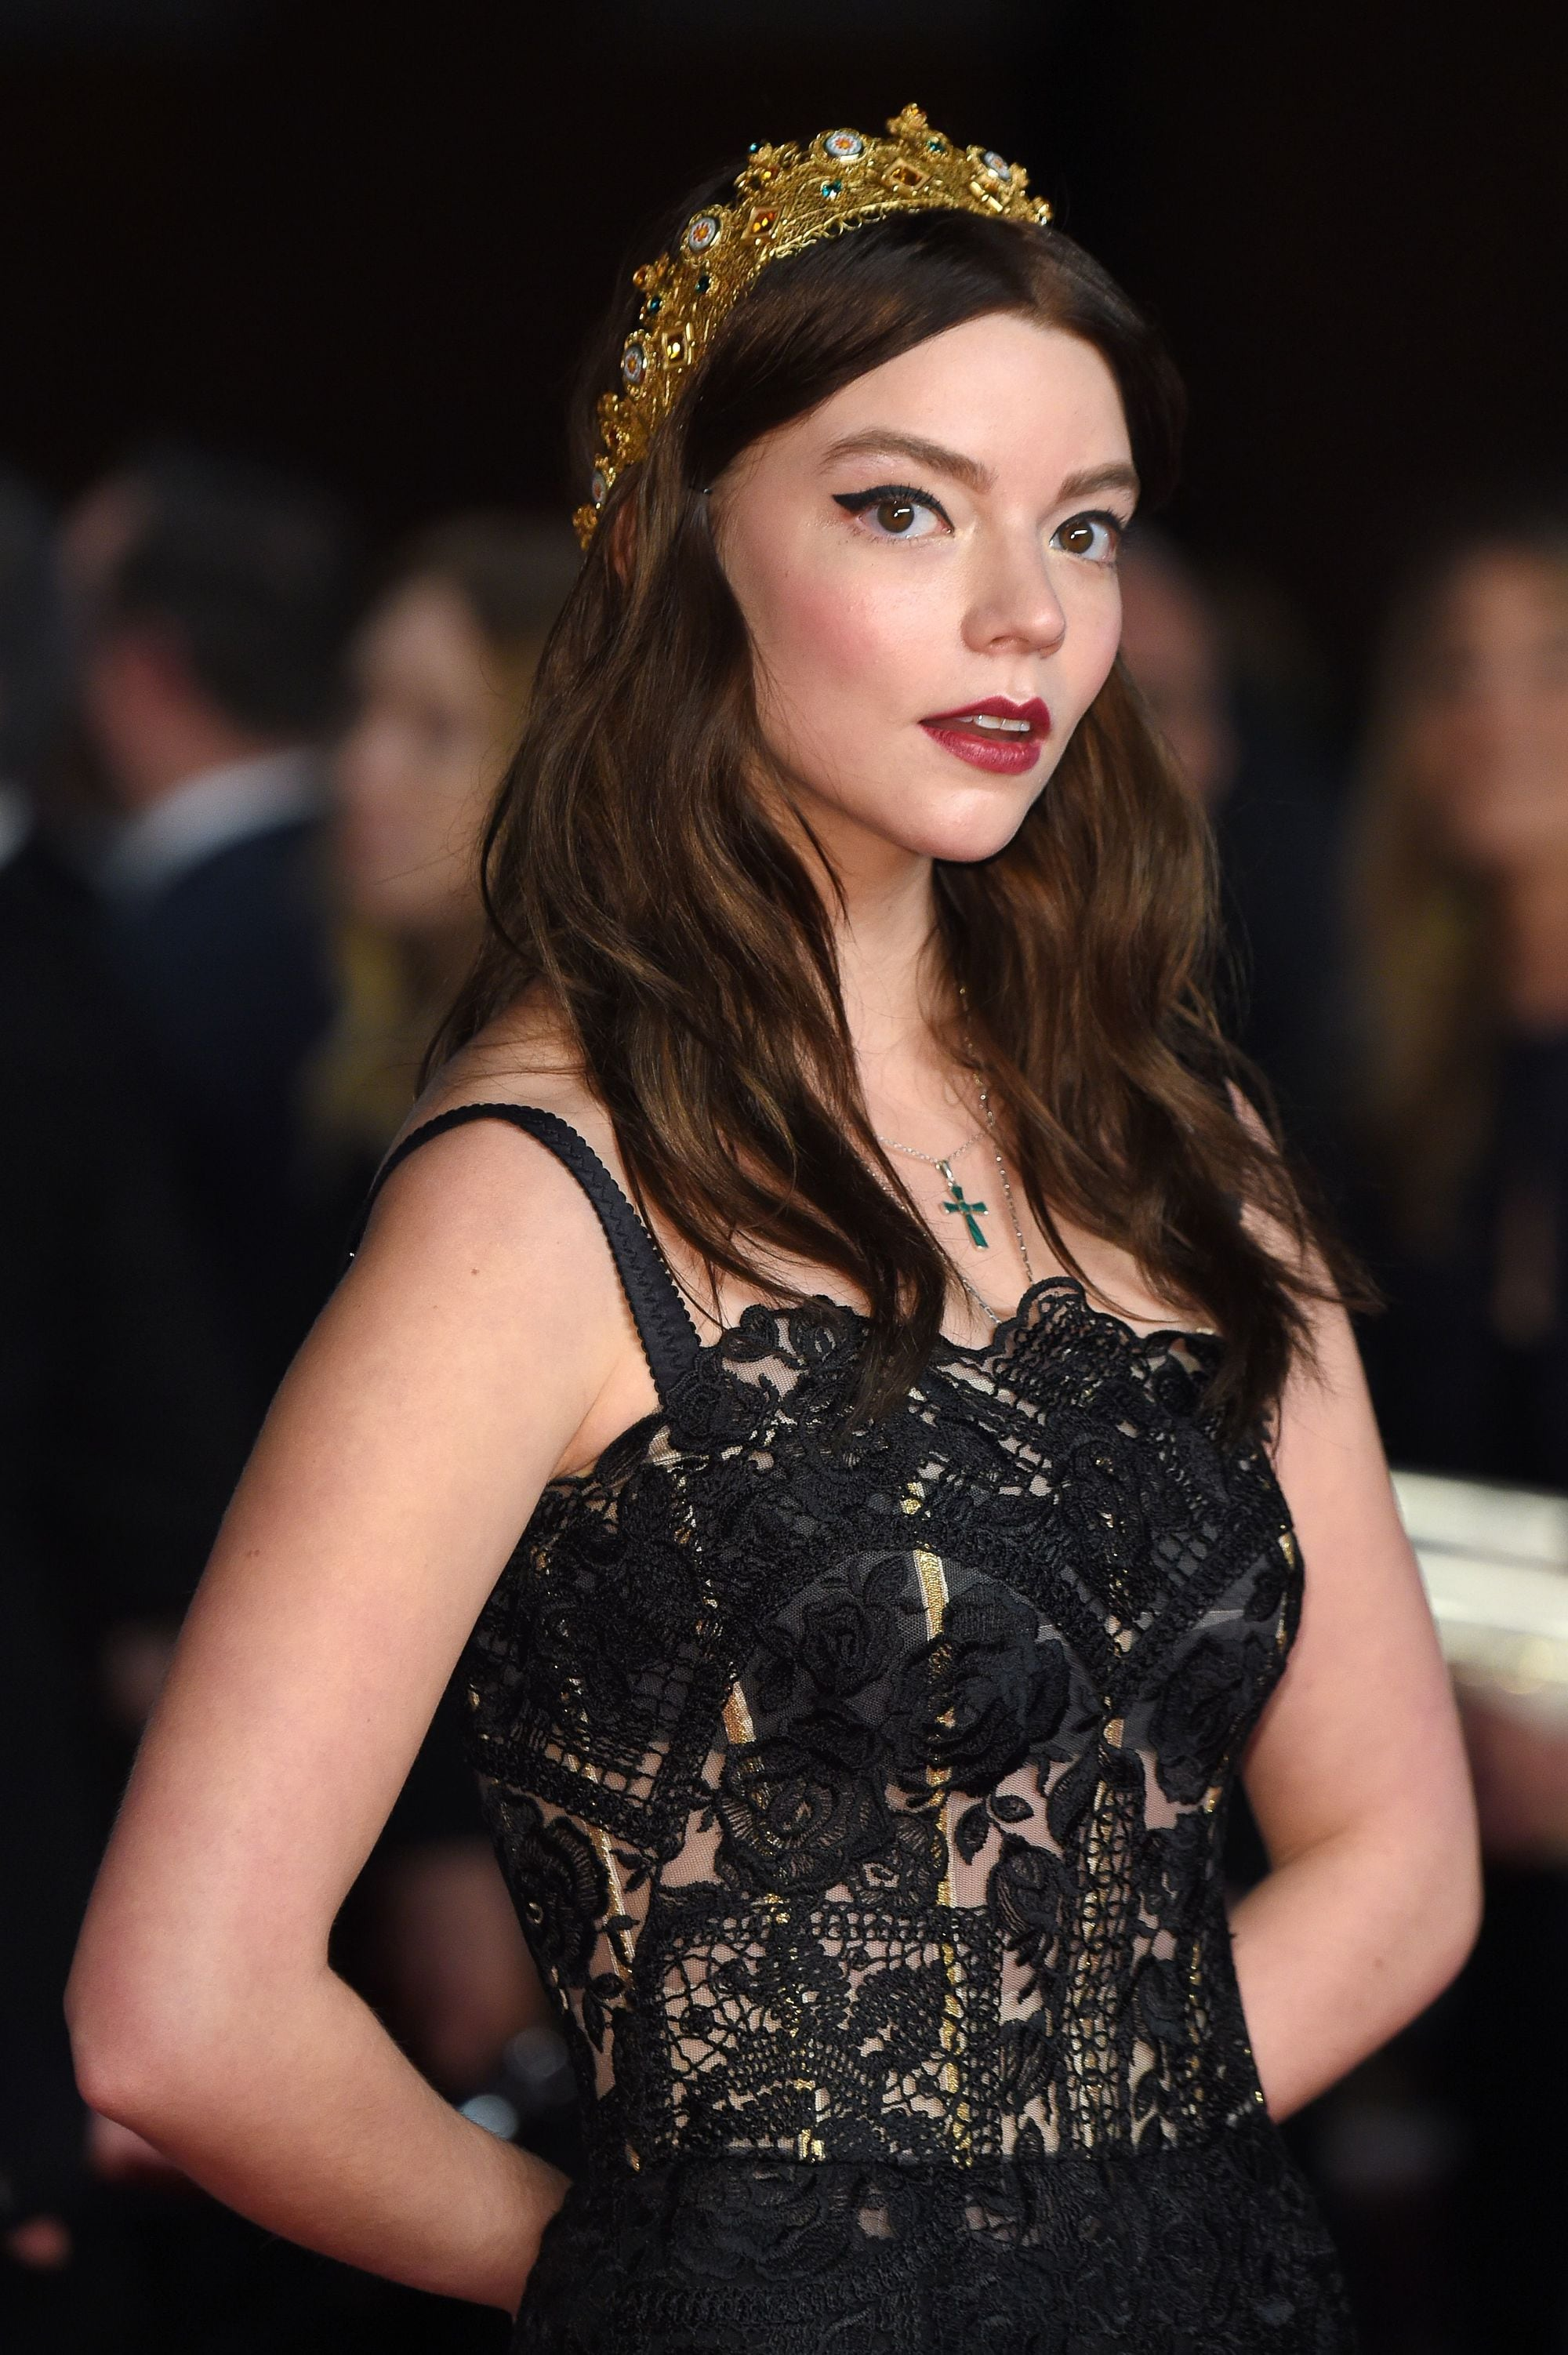 Anya Taylor-Joy medium length dark brown wavy hair with gold crown headpiece